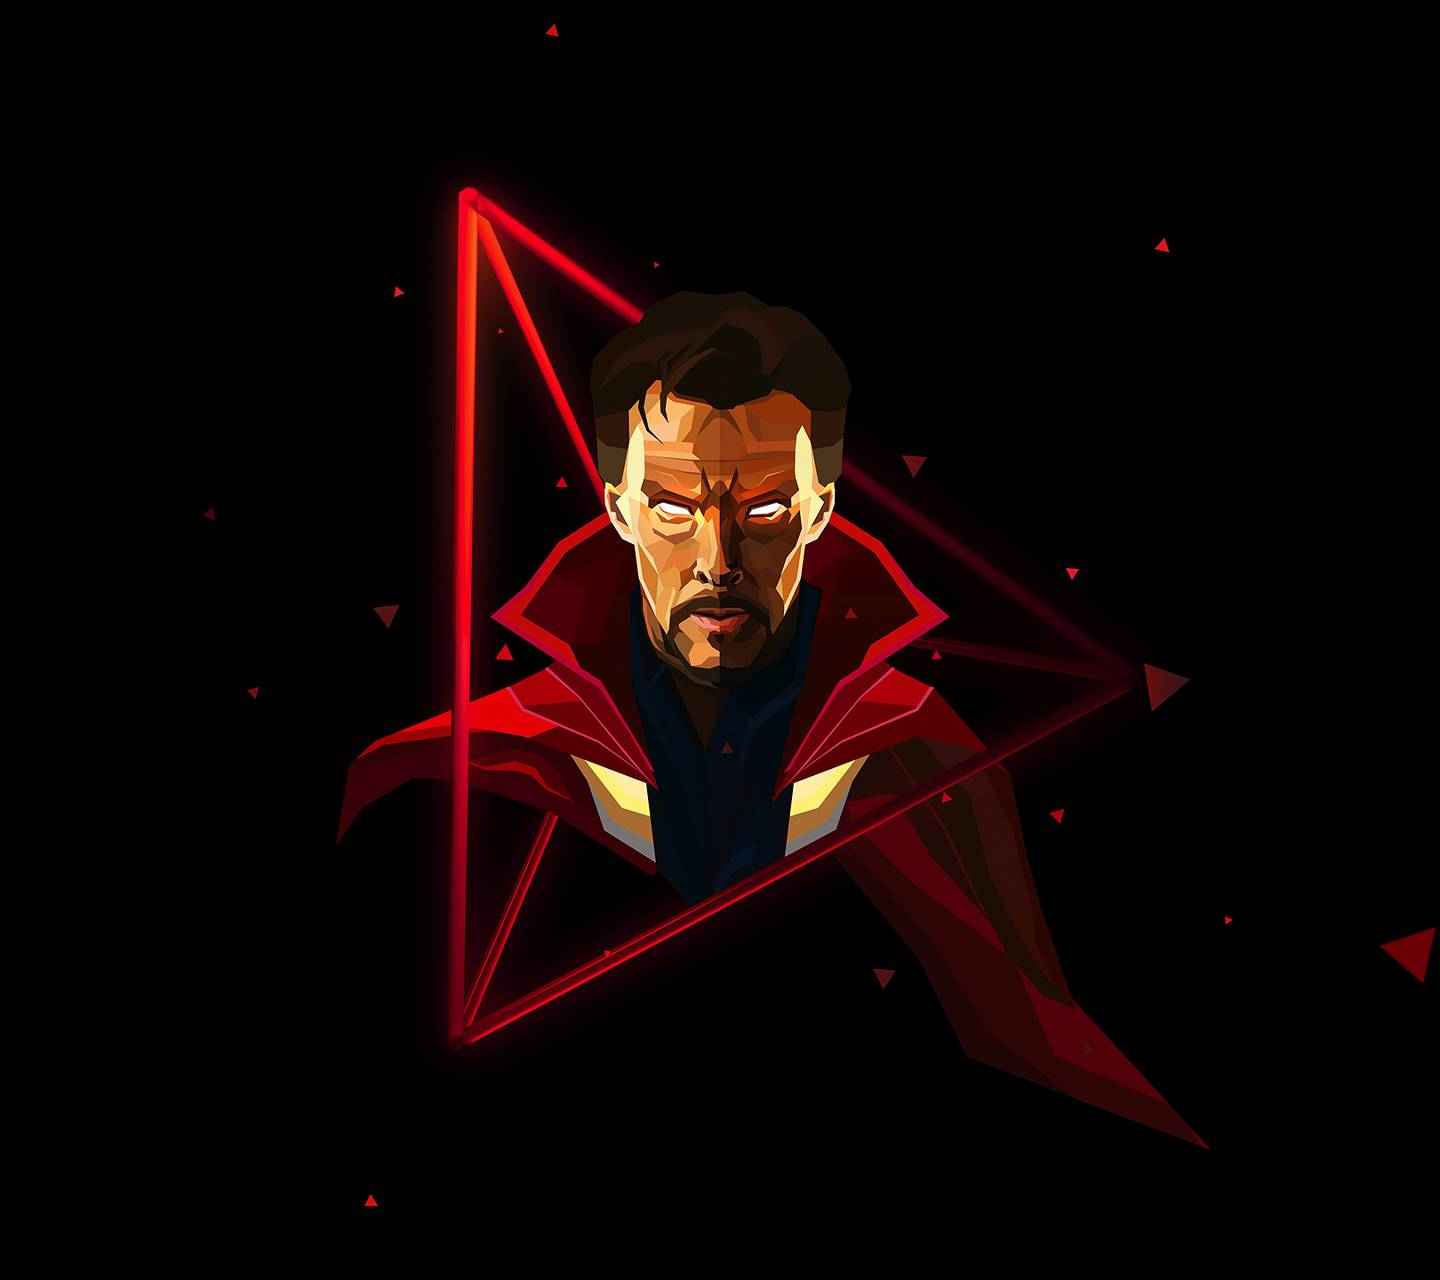 doctor strange wallpapers hd - wallpaper cave